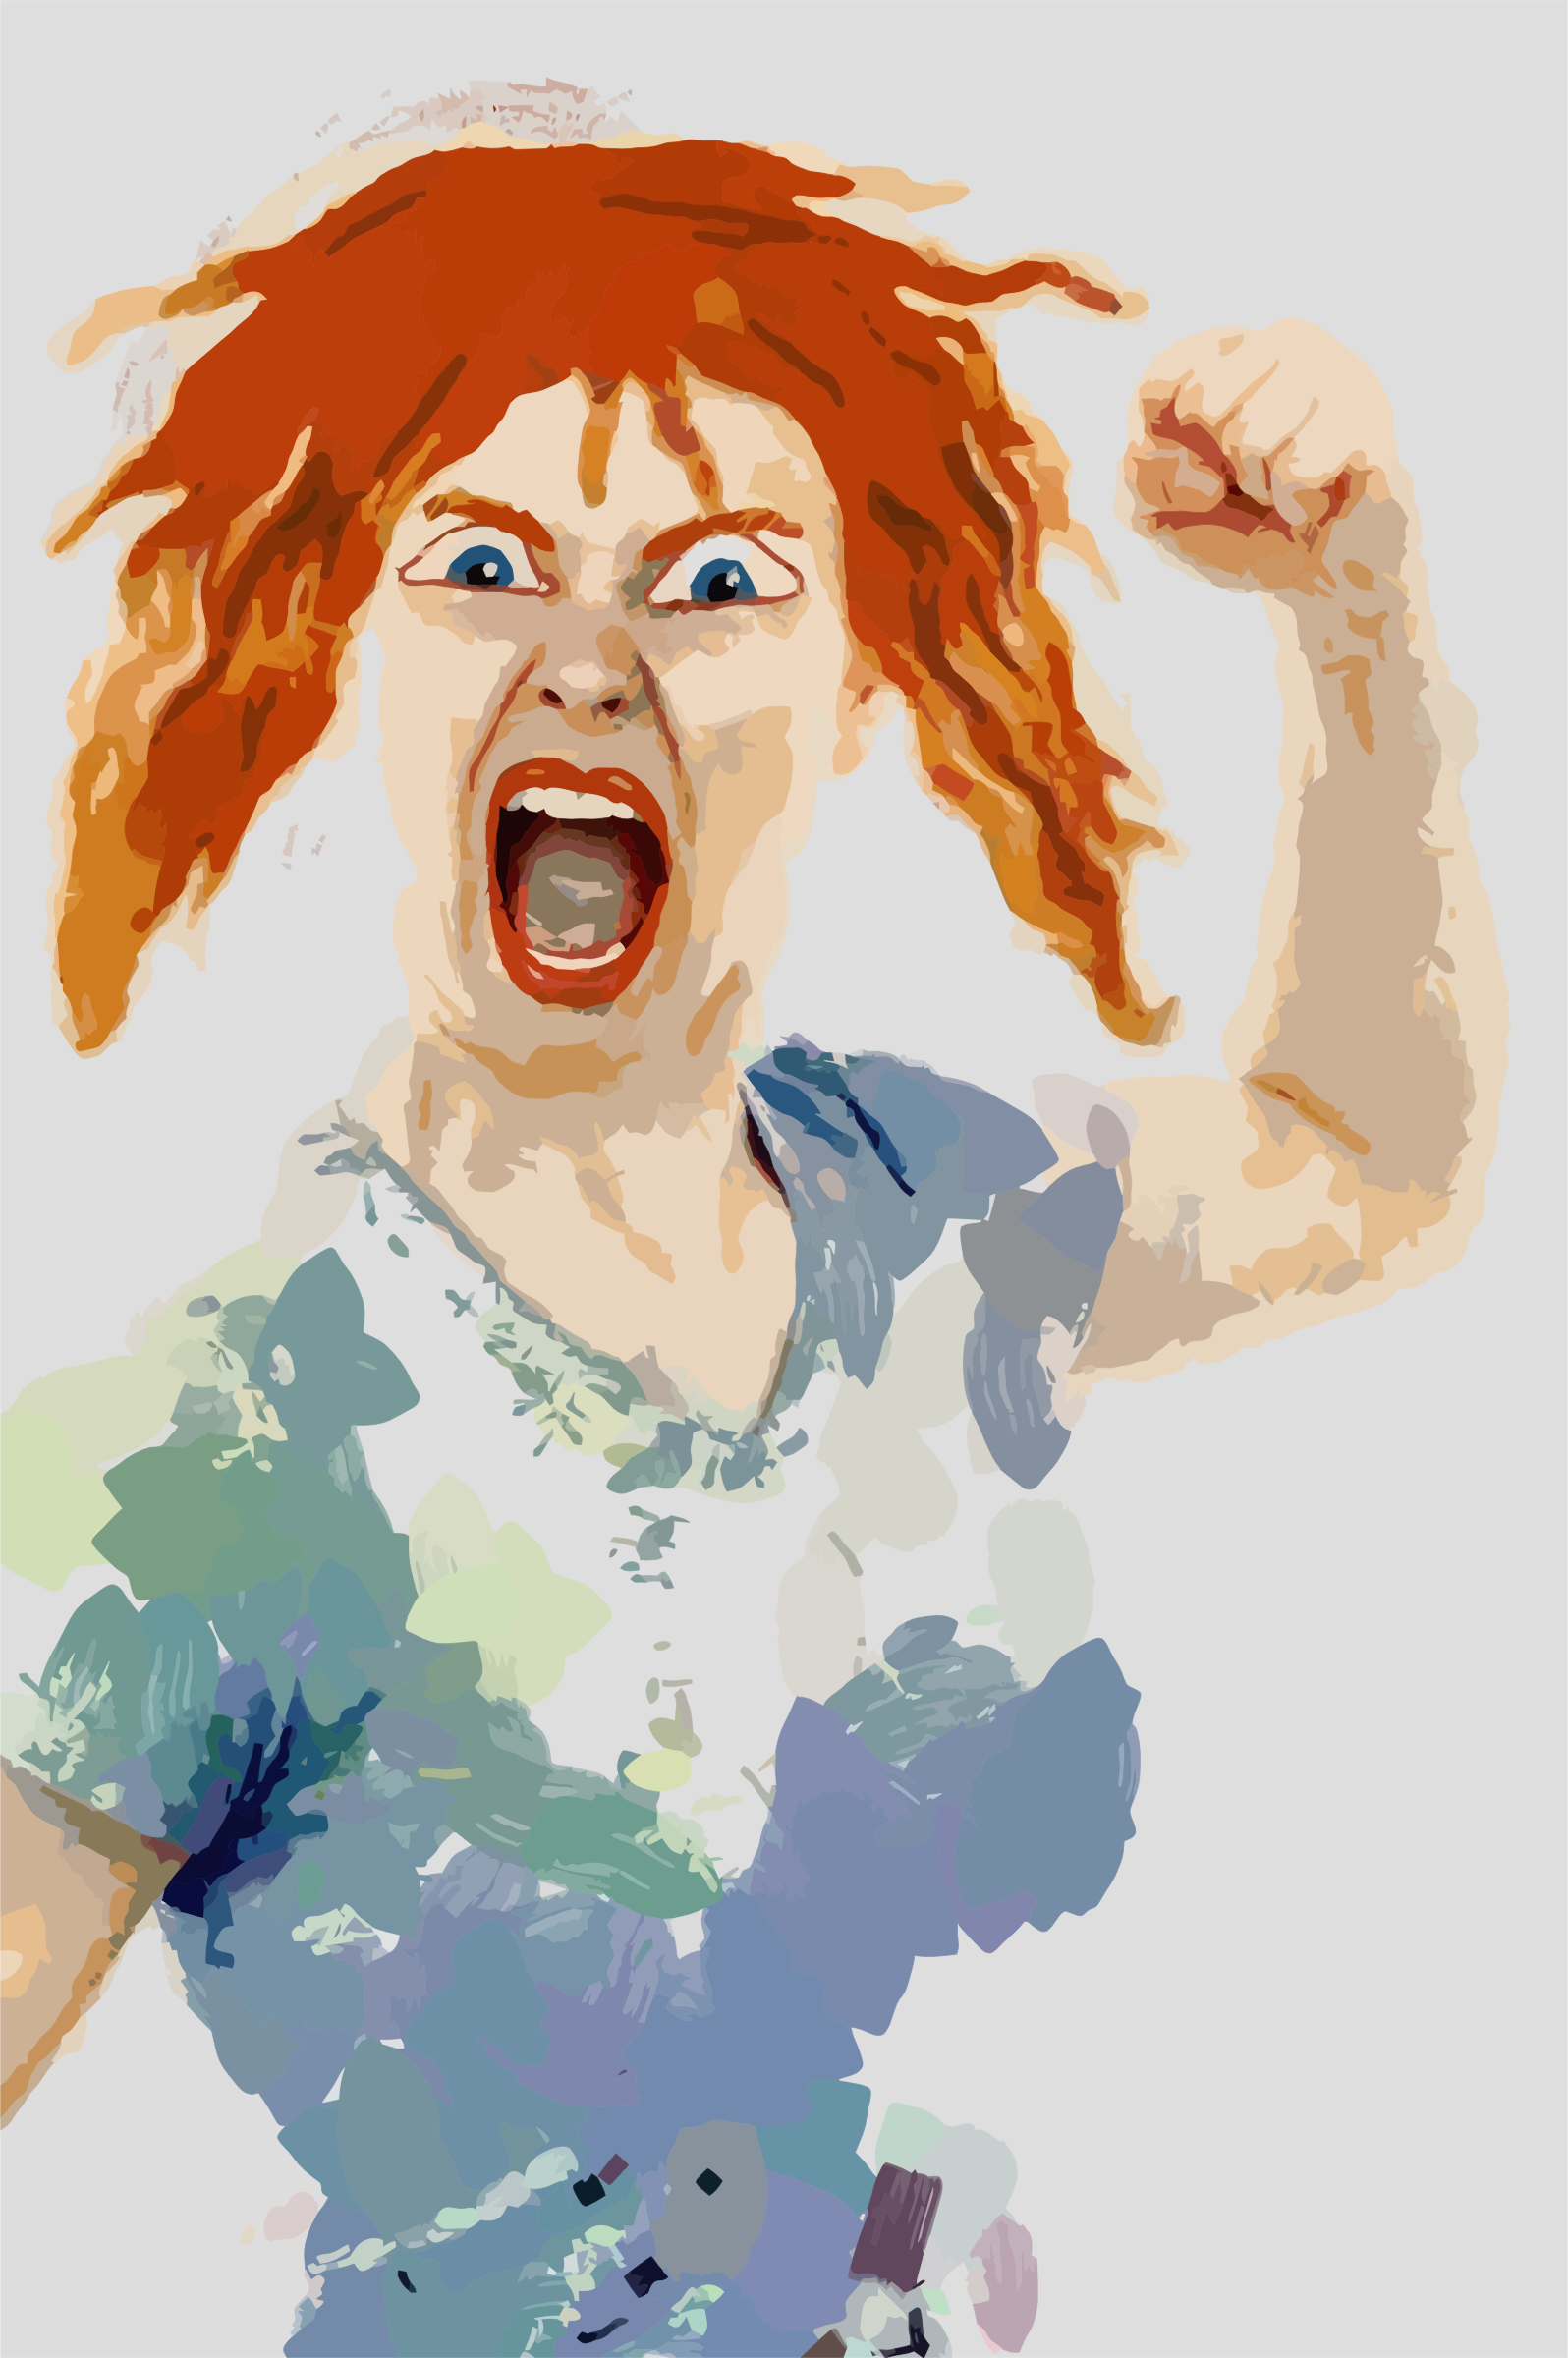 Very Angry Woman by GDJ